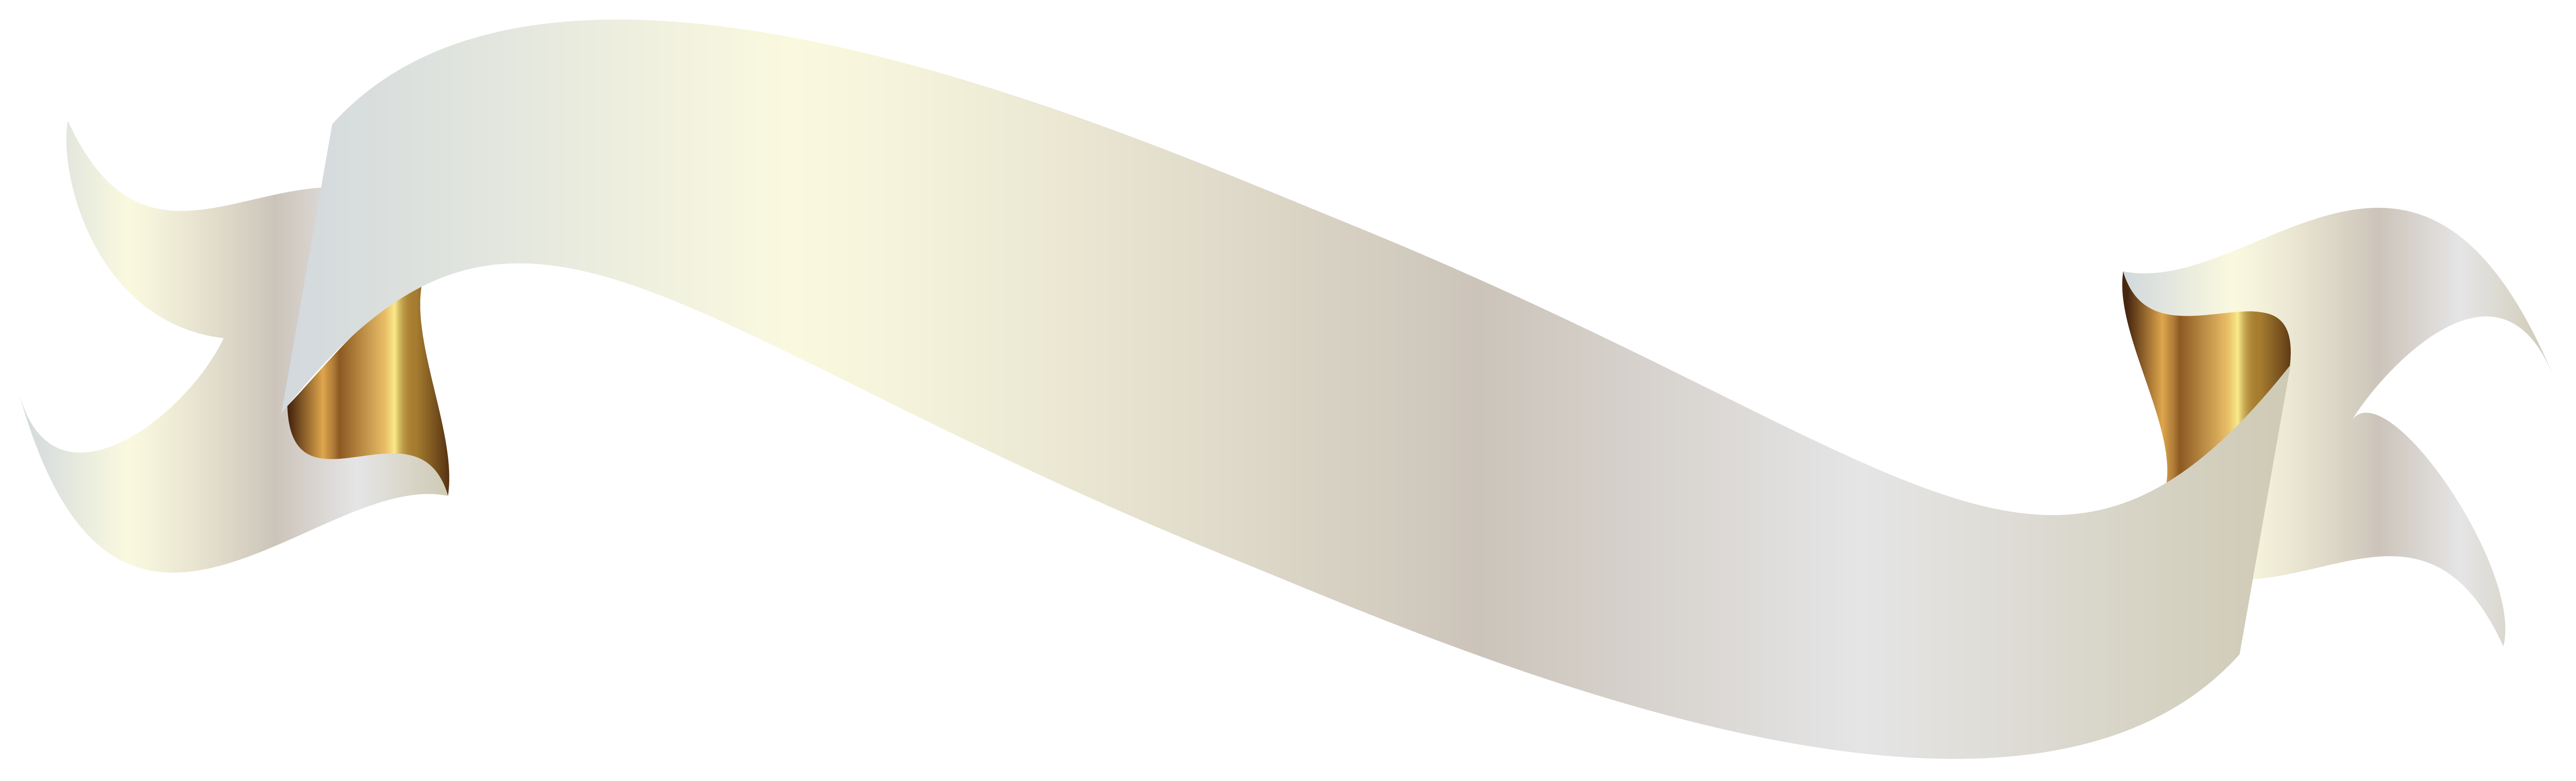 White with gold png. Label clipart grey banner